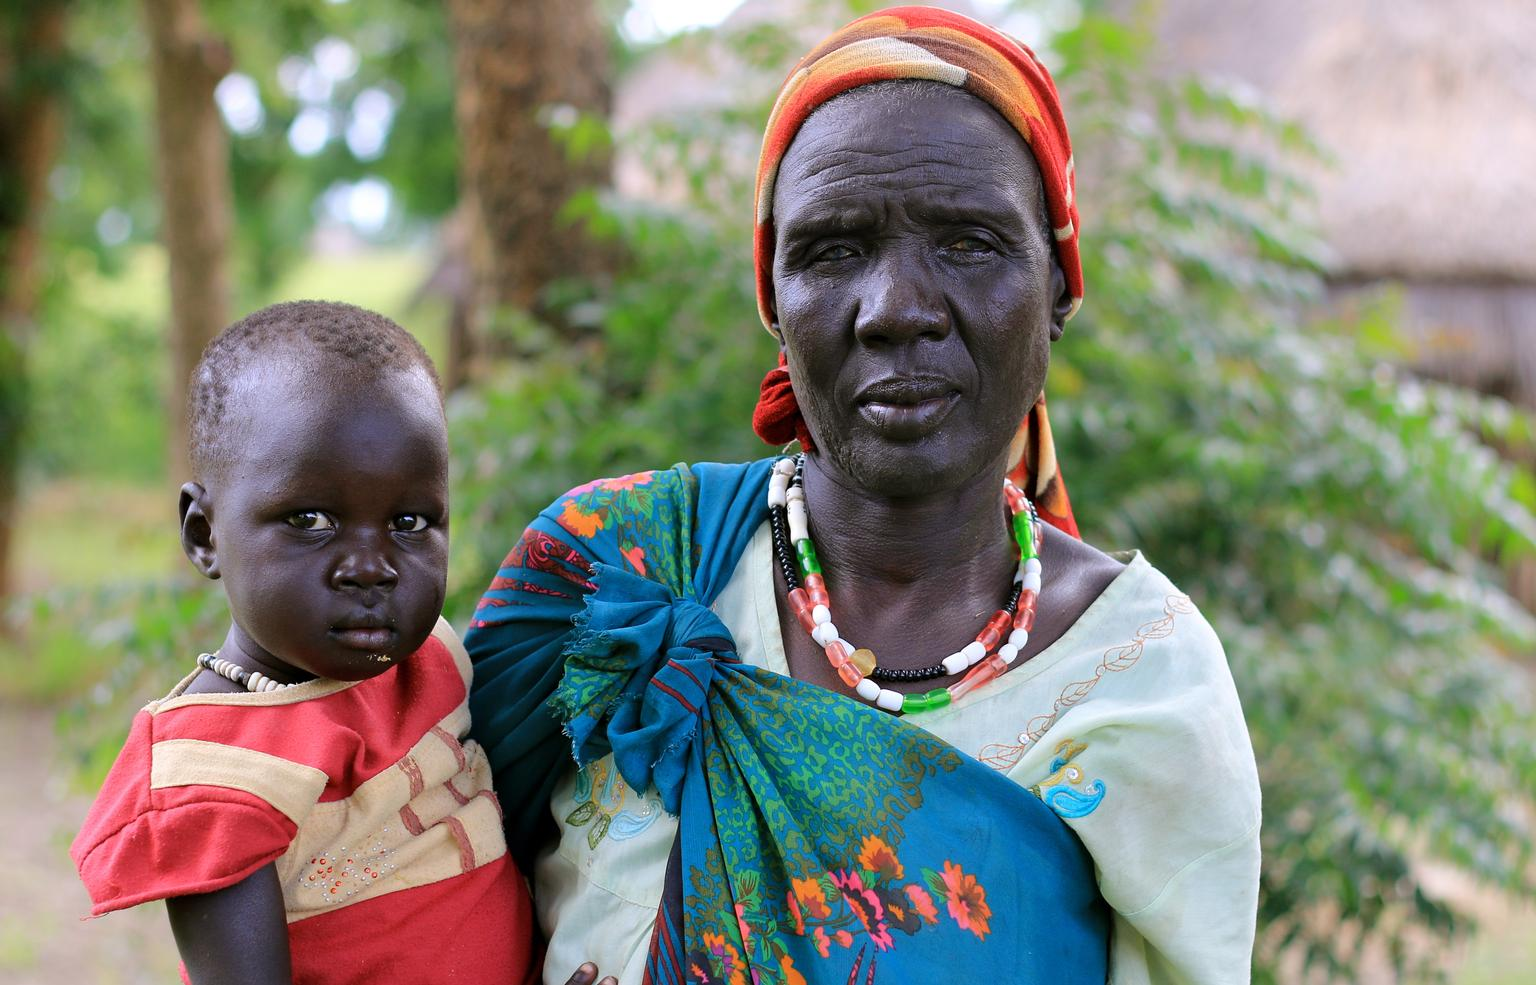 Nyatay Gatkuoth holds Nyahuach Ter, her 3-year-old, in Kiech , South Sudan, where UNICEF and partners are assisting people affected by the conflict.